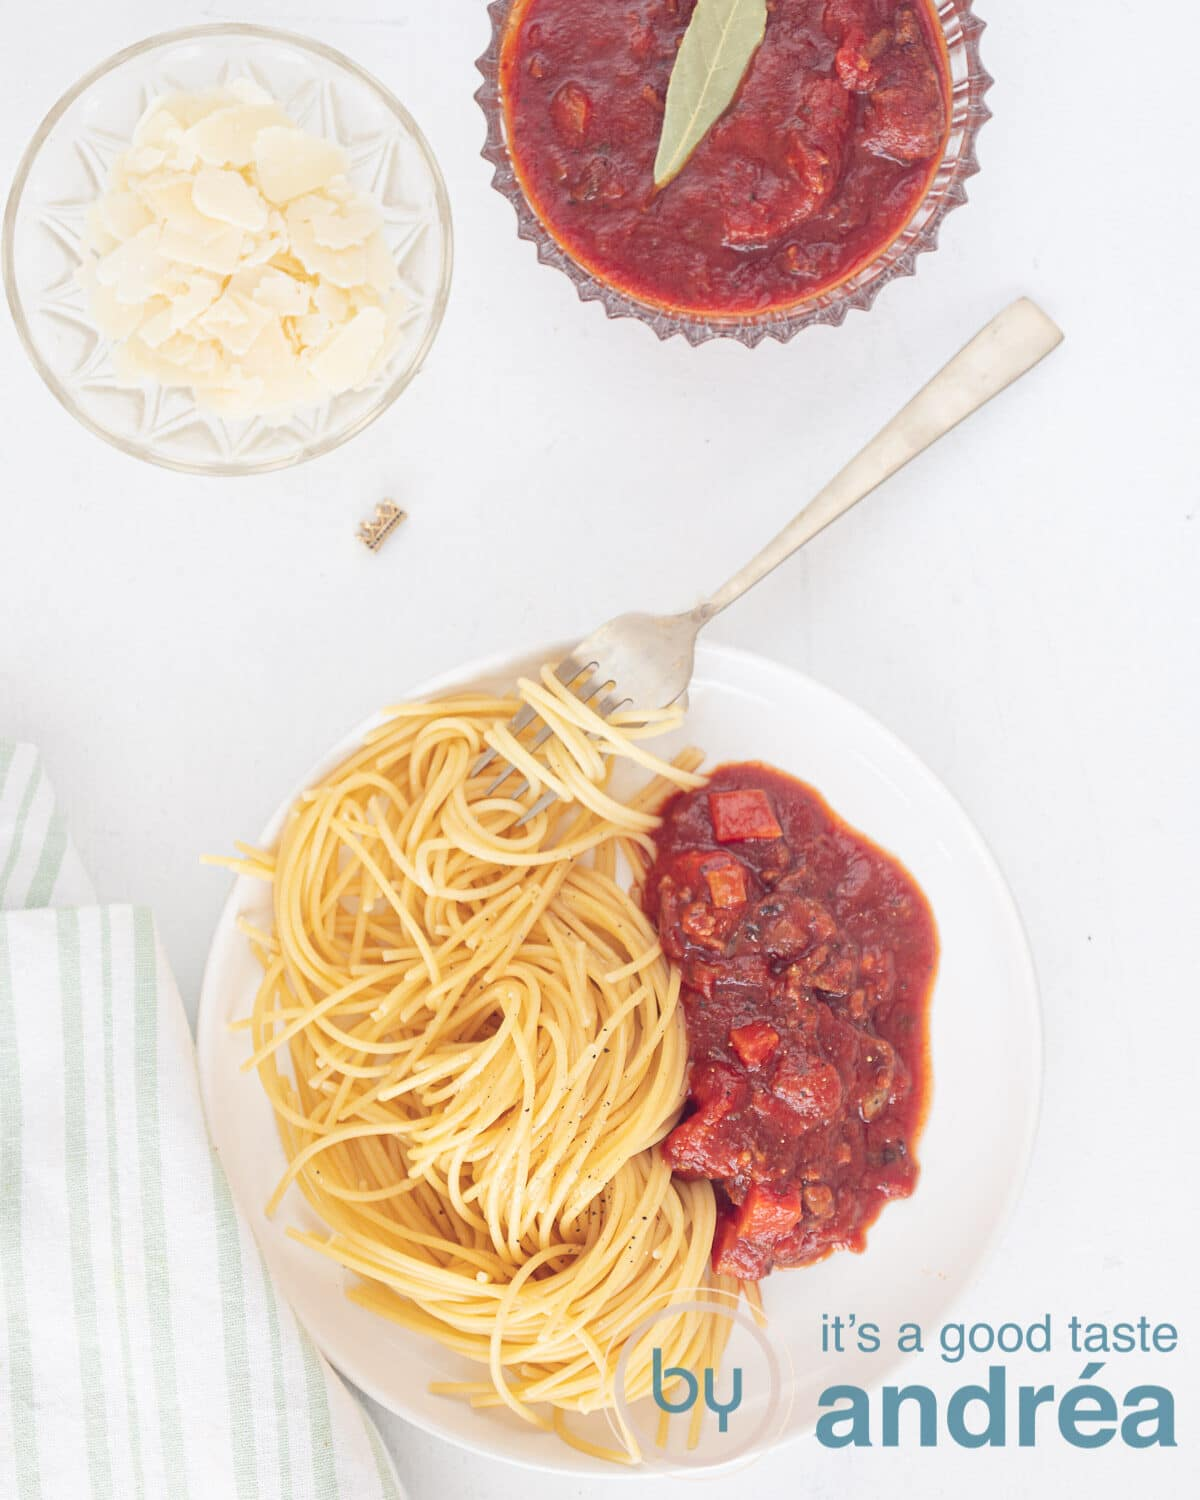 photo above: plate with spaghetti and crockpot spaghetti sauce with meat